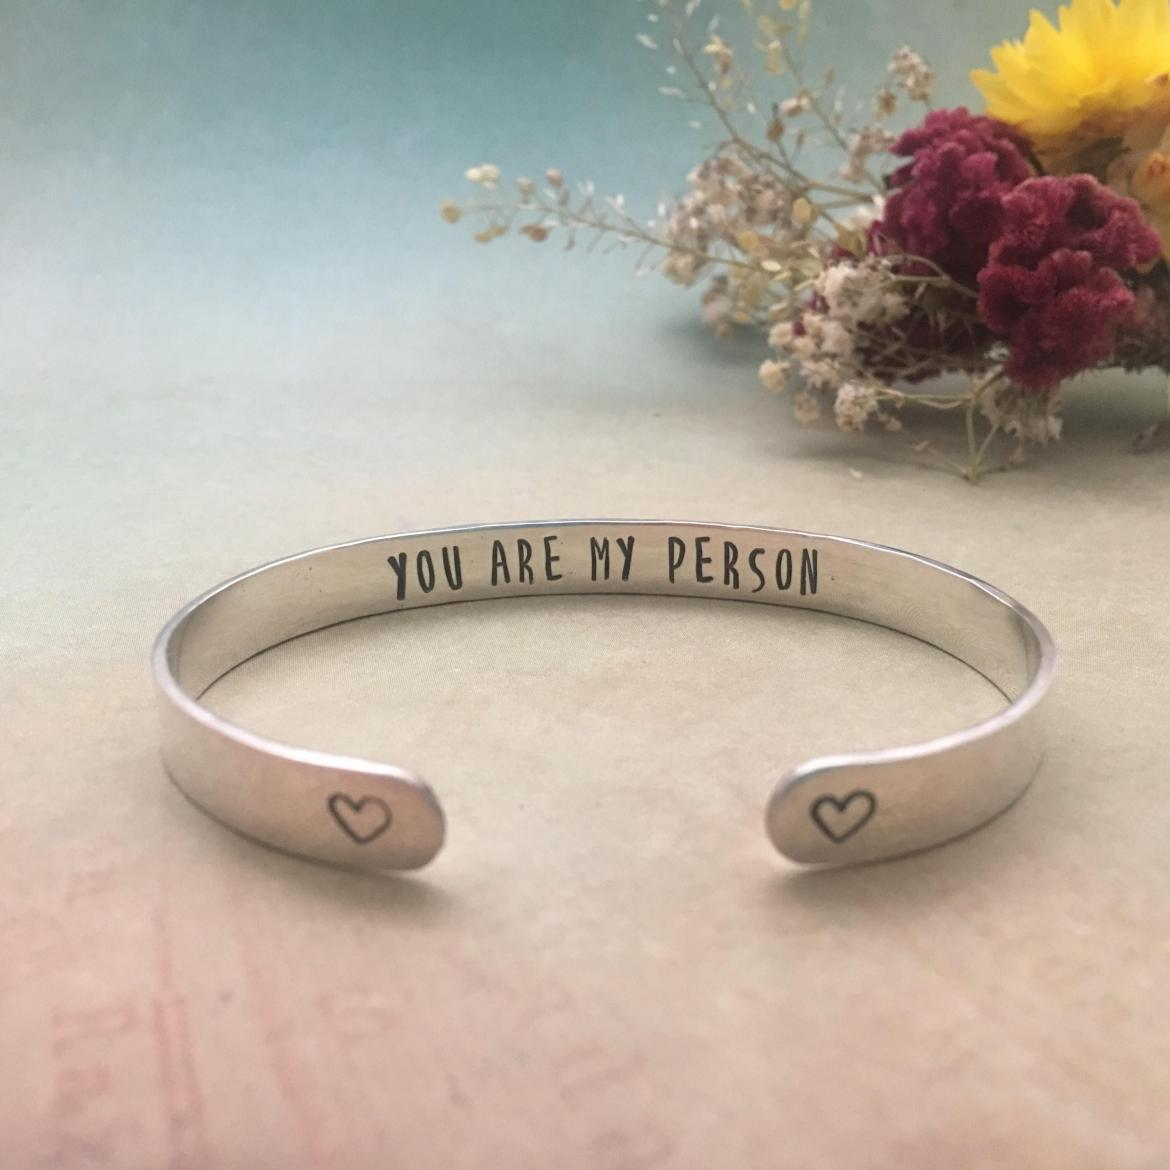 maid of honor bracelet - you are my person